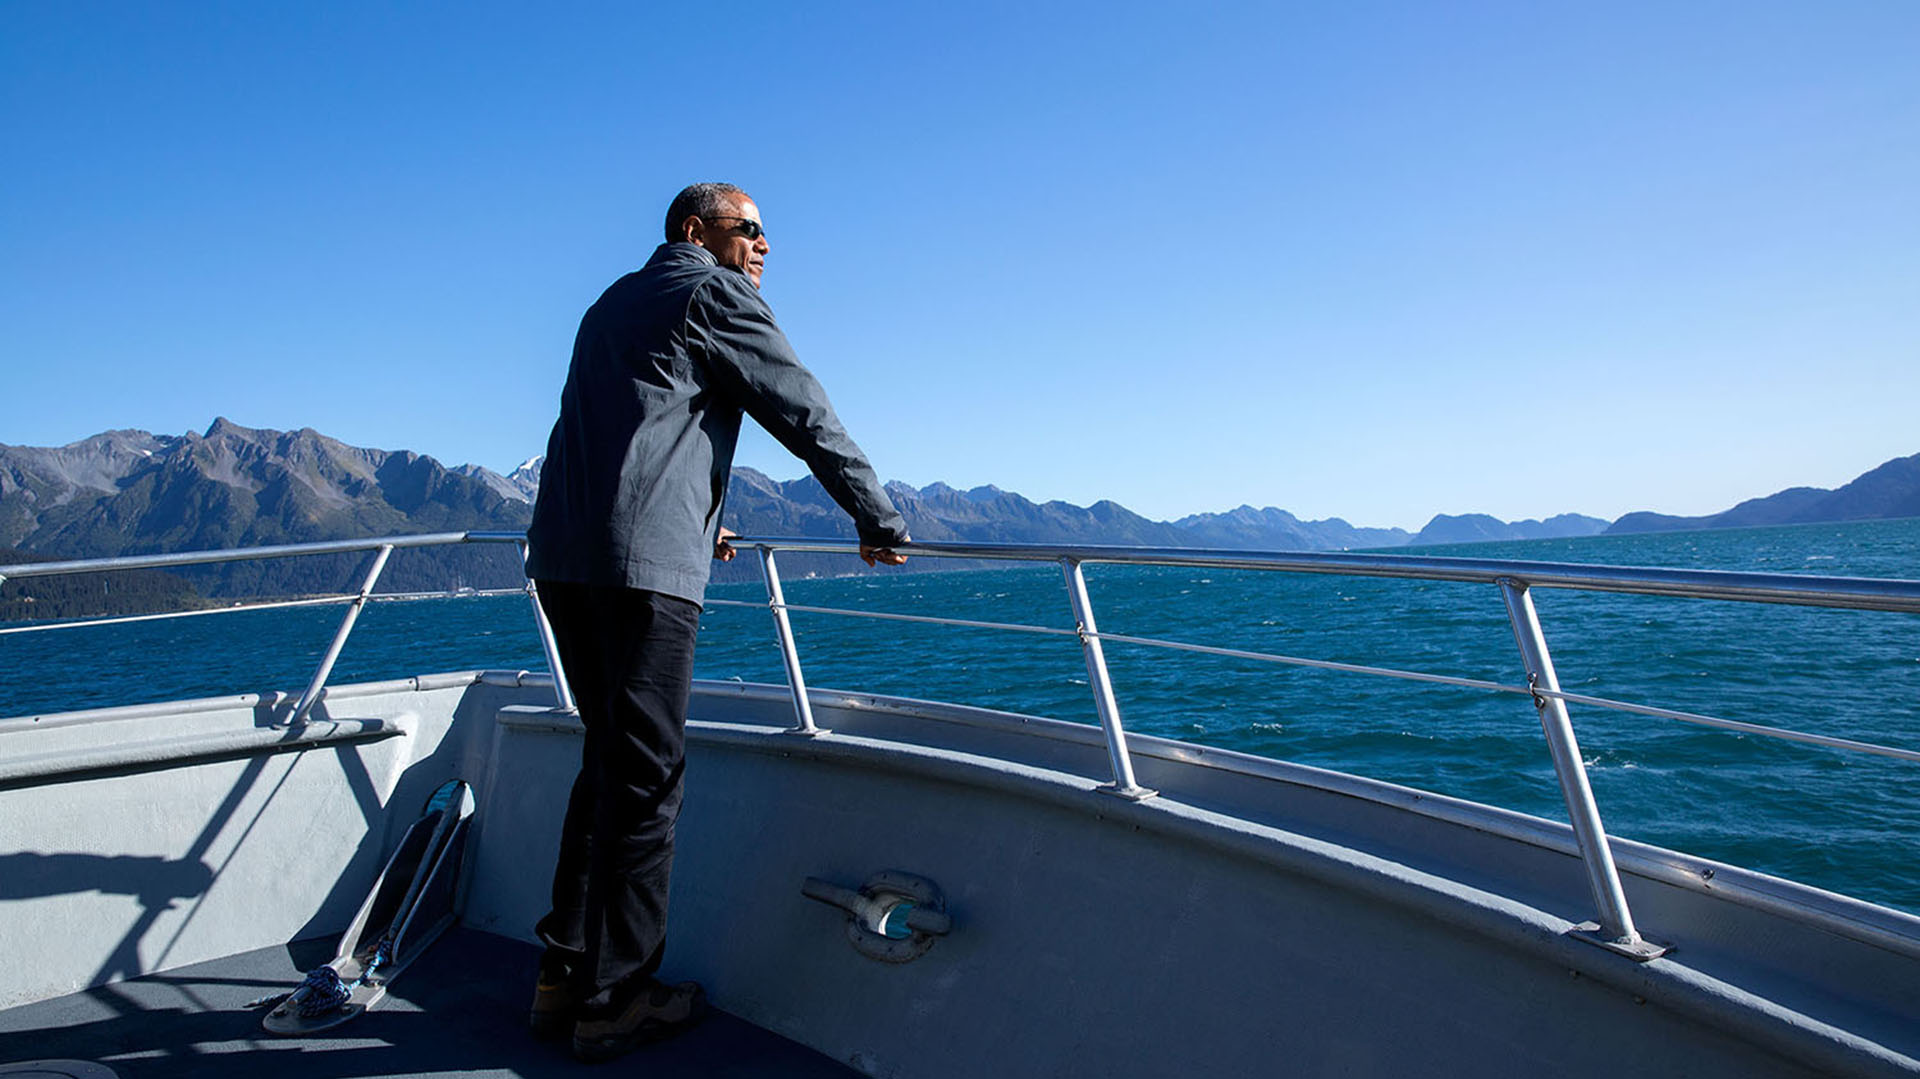 Obama abordo de un bote en el Parque Nacional de los fiordos Kenai en Alaska. 1° d septiembre de 2015 (Official White House Photo by Pete Souza).